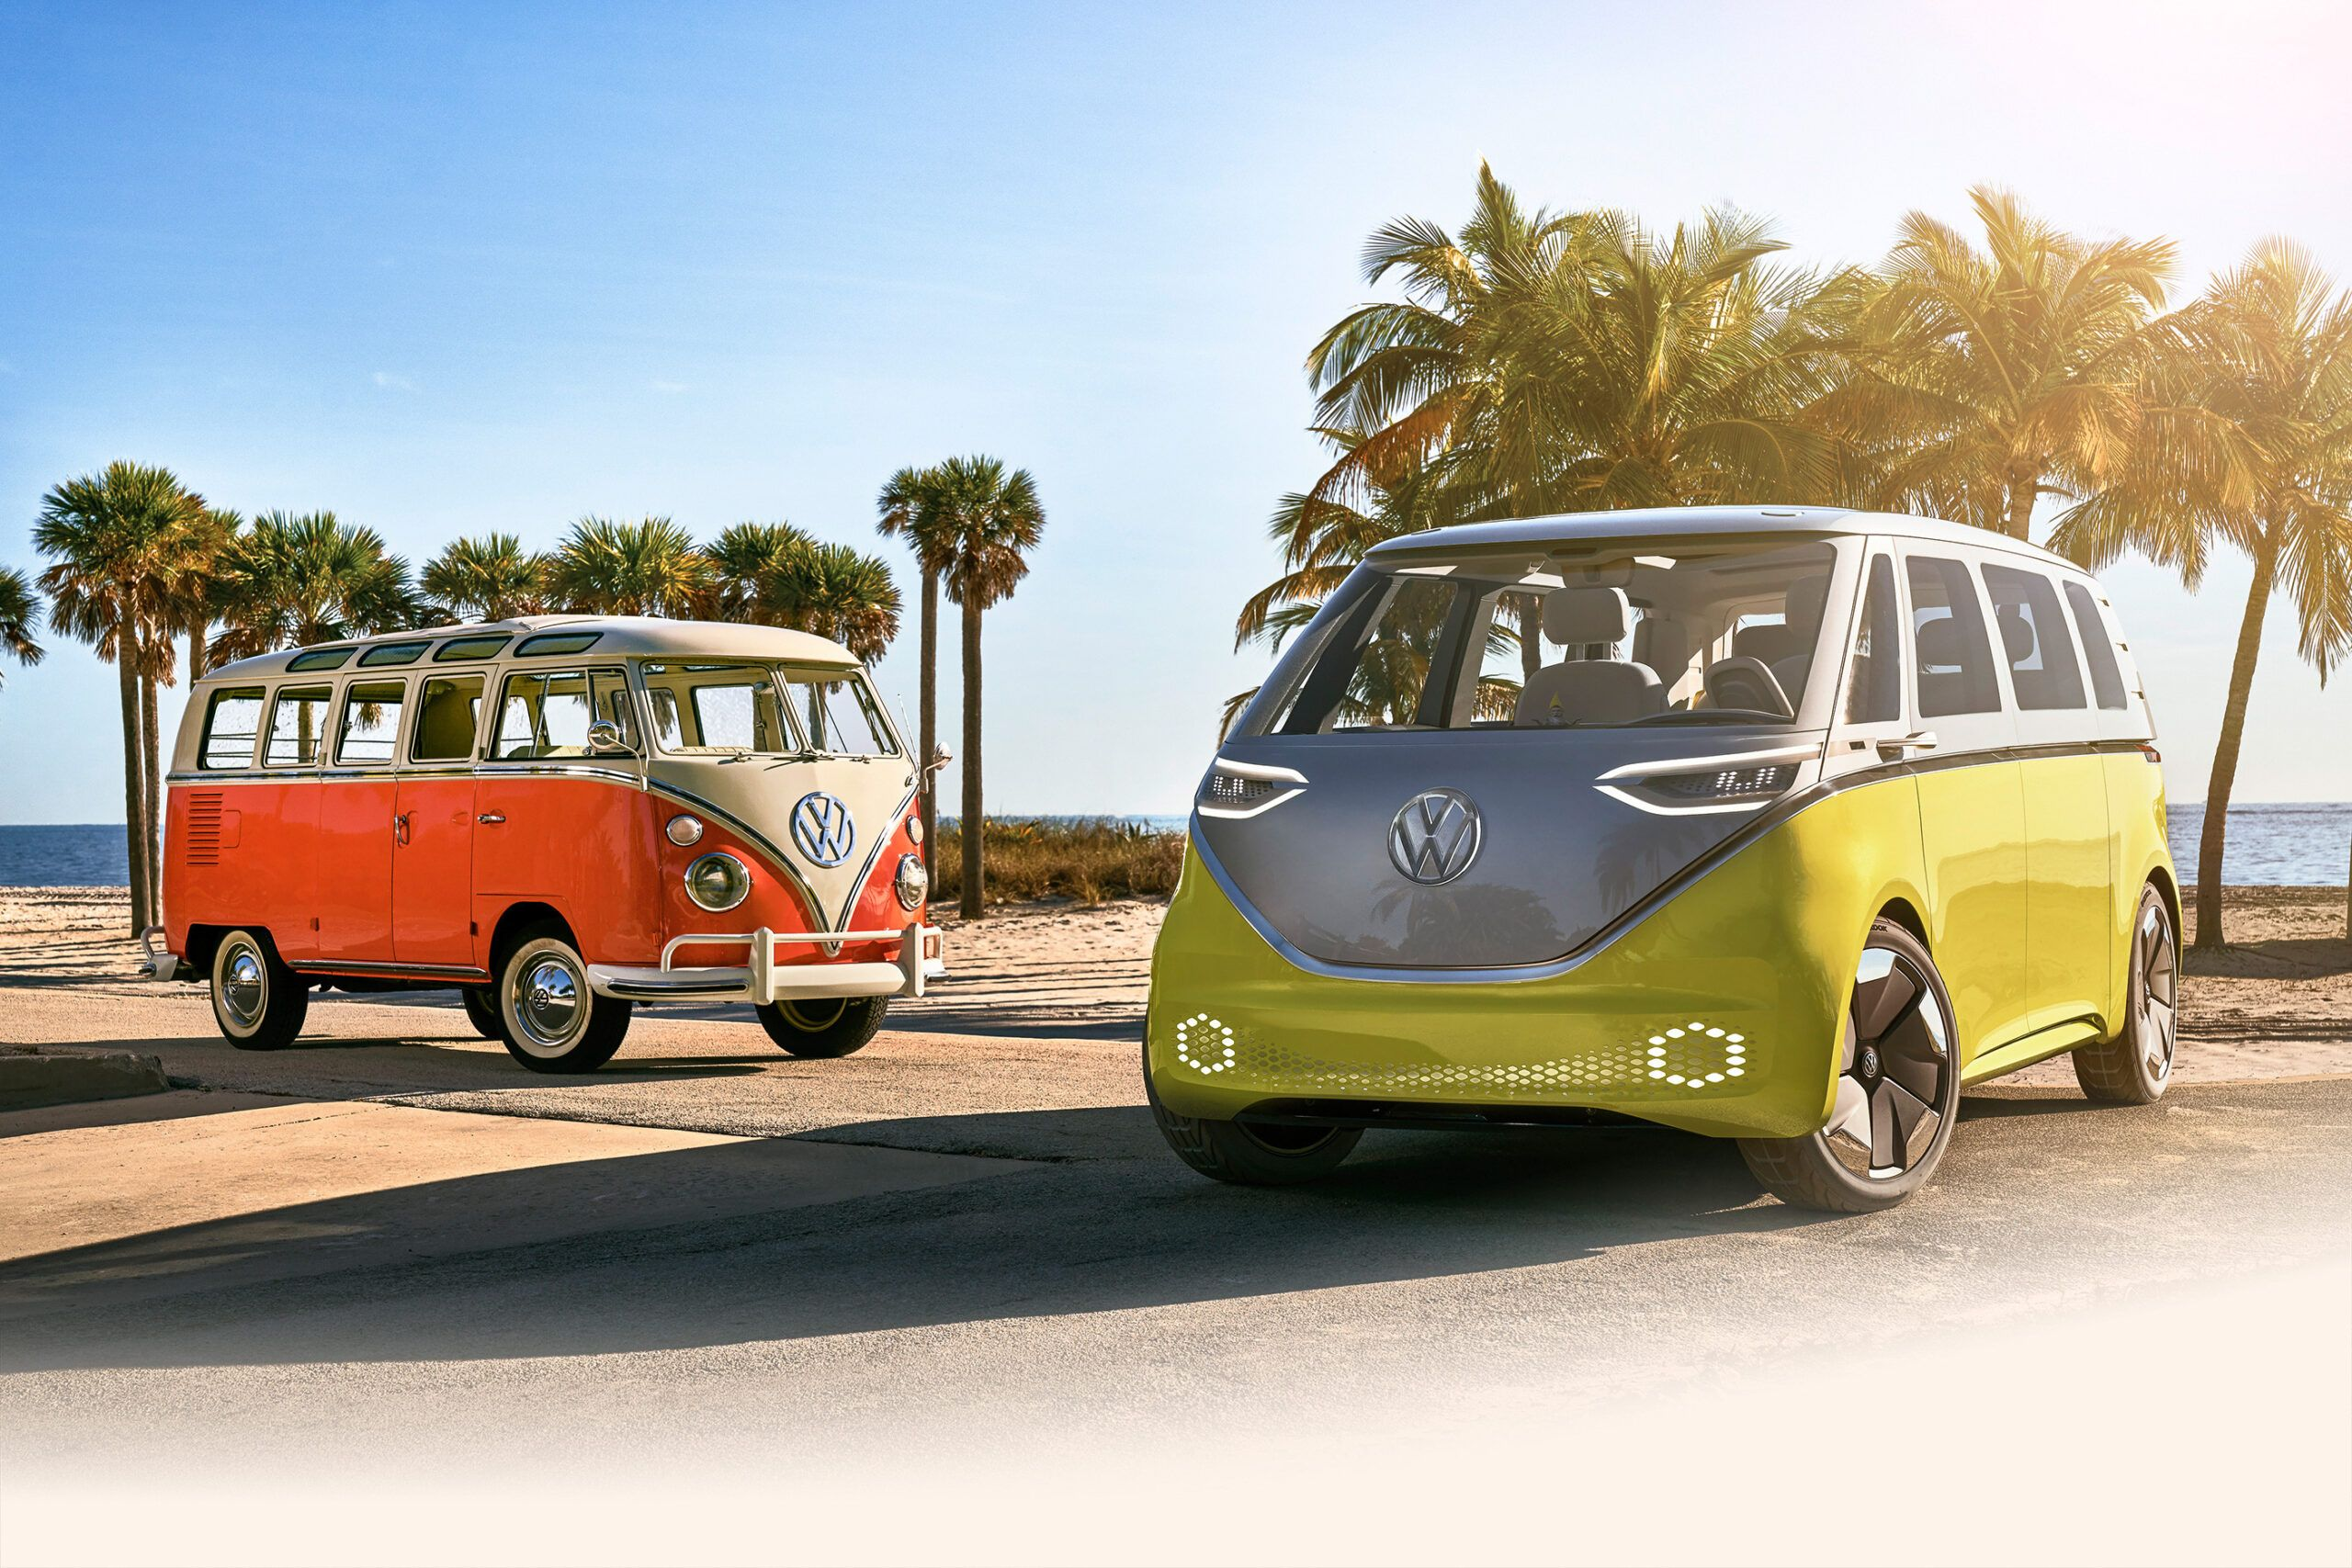 2020 Electric Volkswagen Bus Specscar Update 2020 Di 2020 Mobil